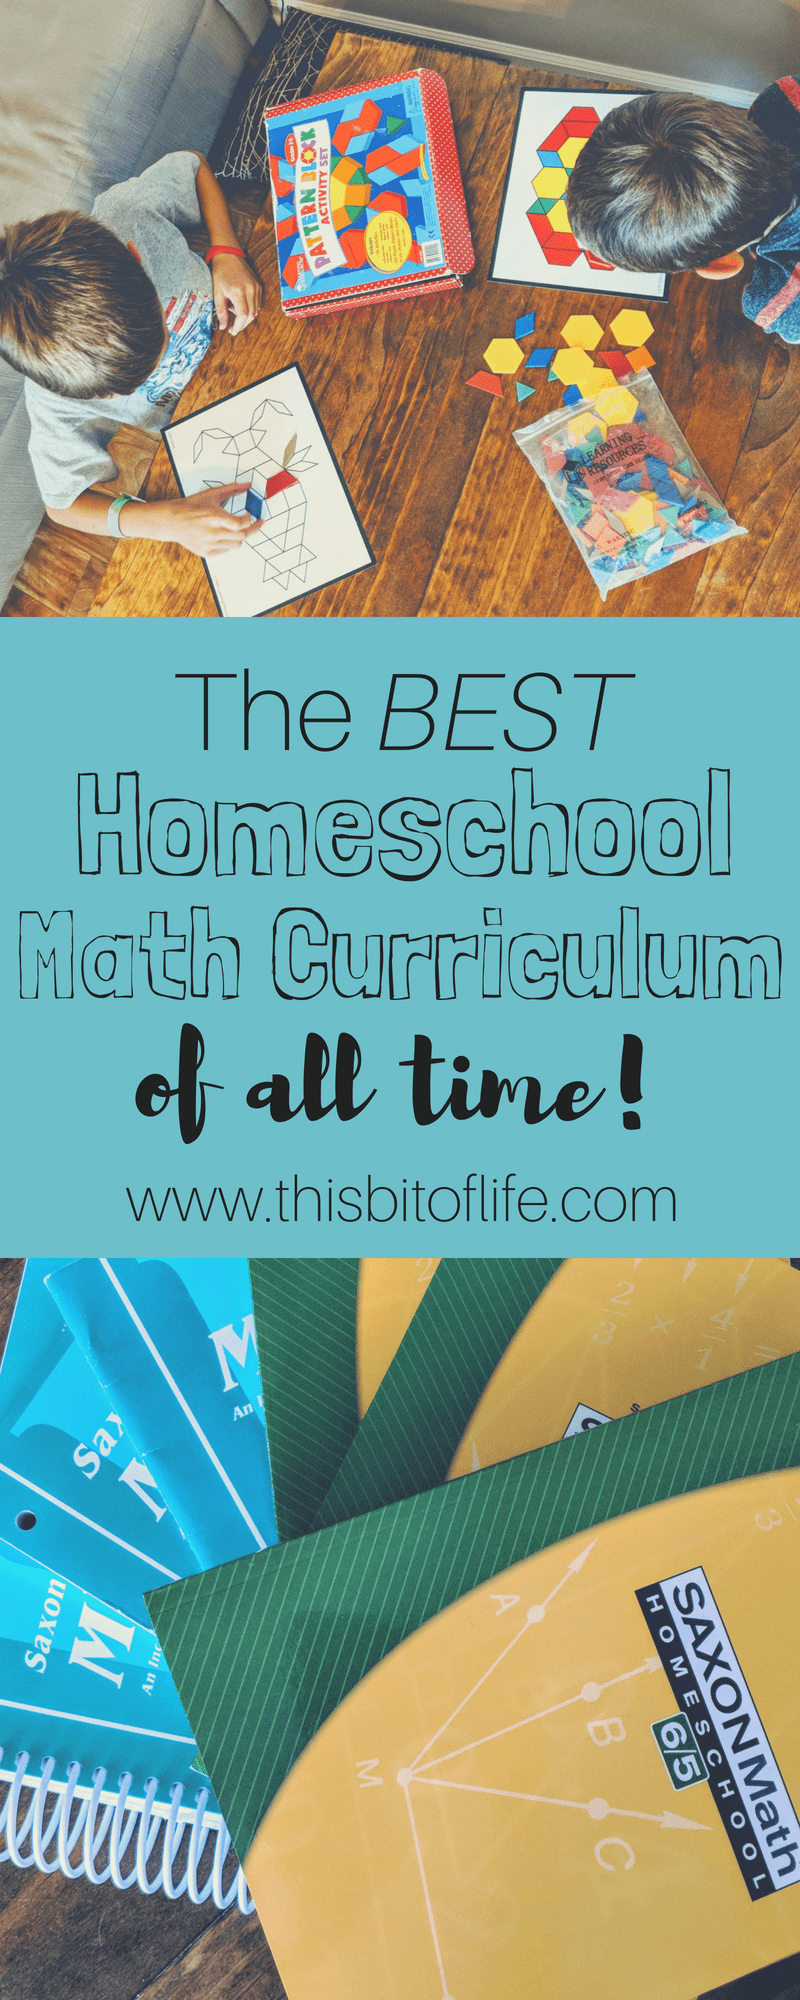 The BEST homeschool math curriculum of all time! Find out why Saxon math is the best math curriculum and why we love it so much in our homeschool. #homeschoolmath #saxonmath #mathcurriculum